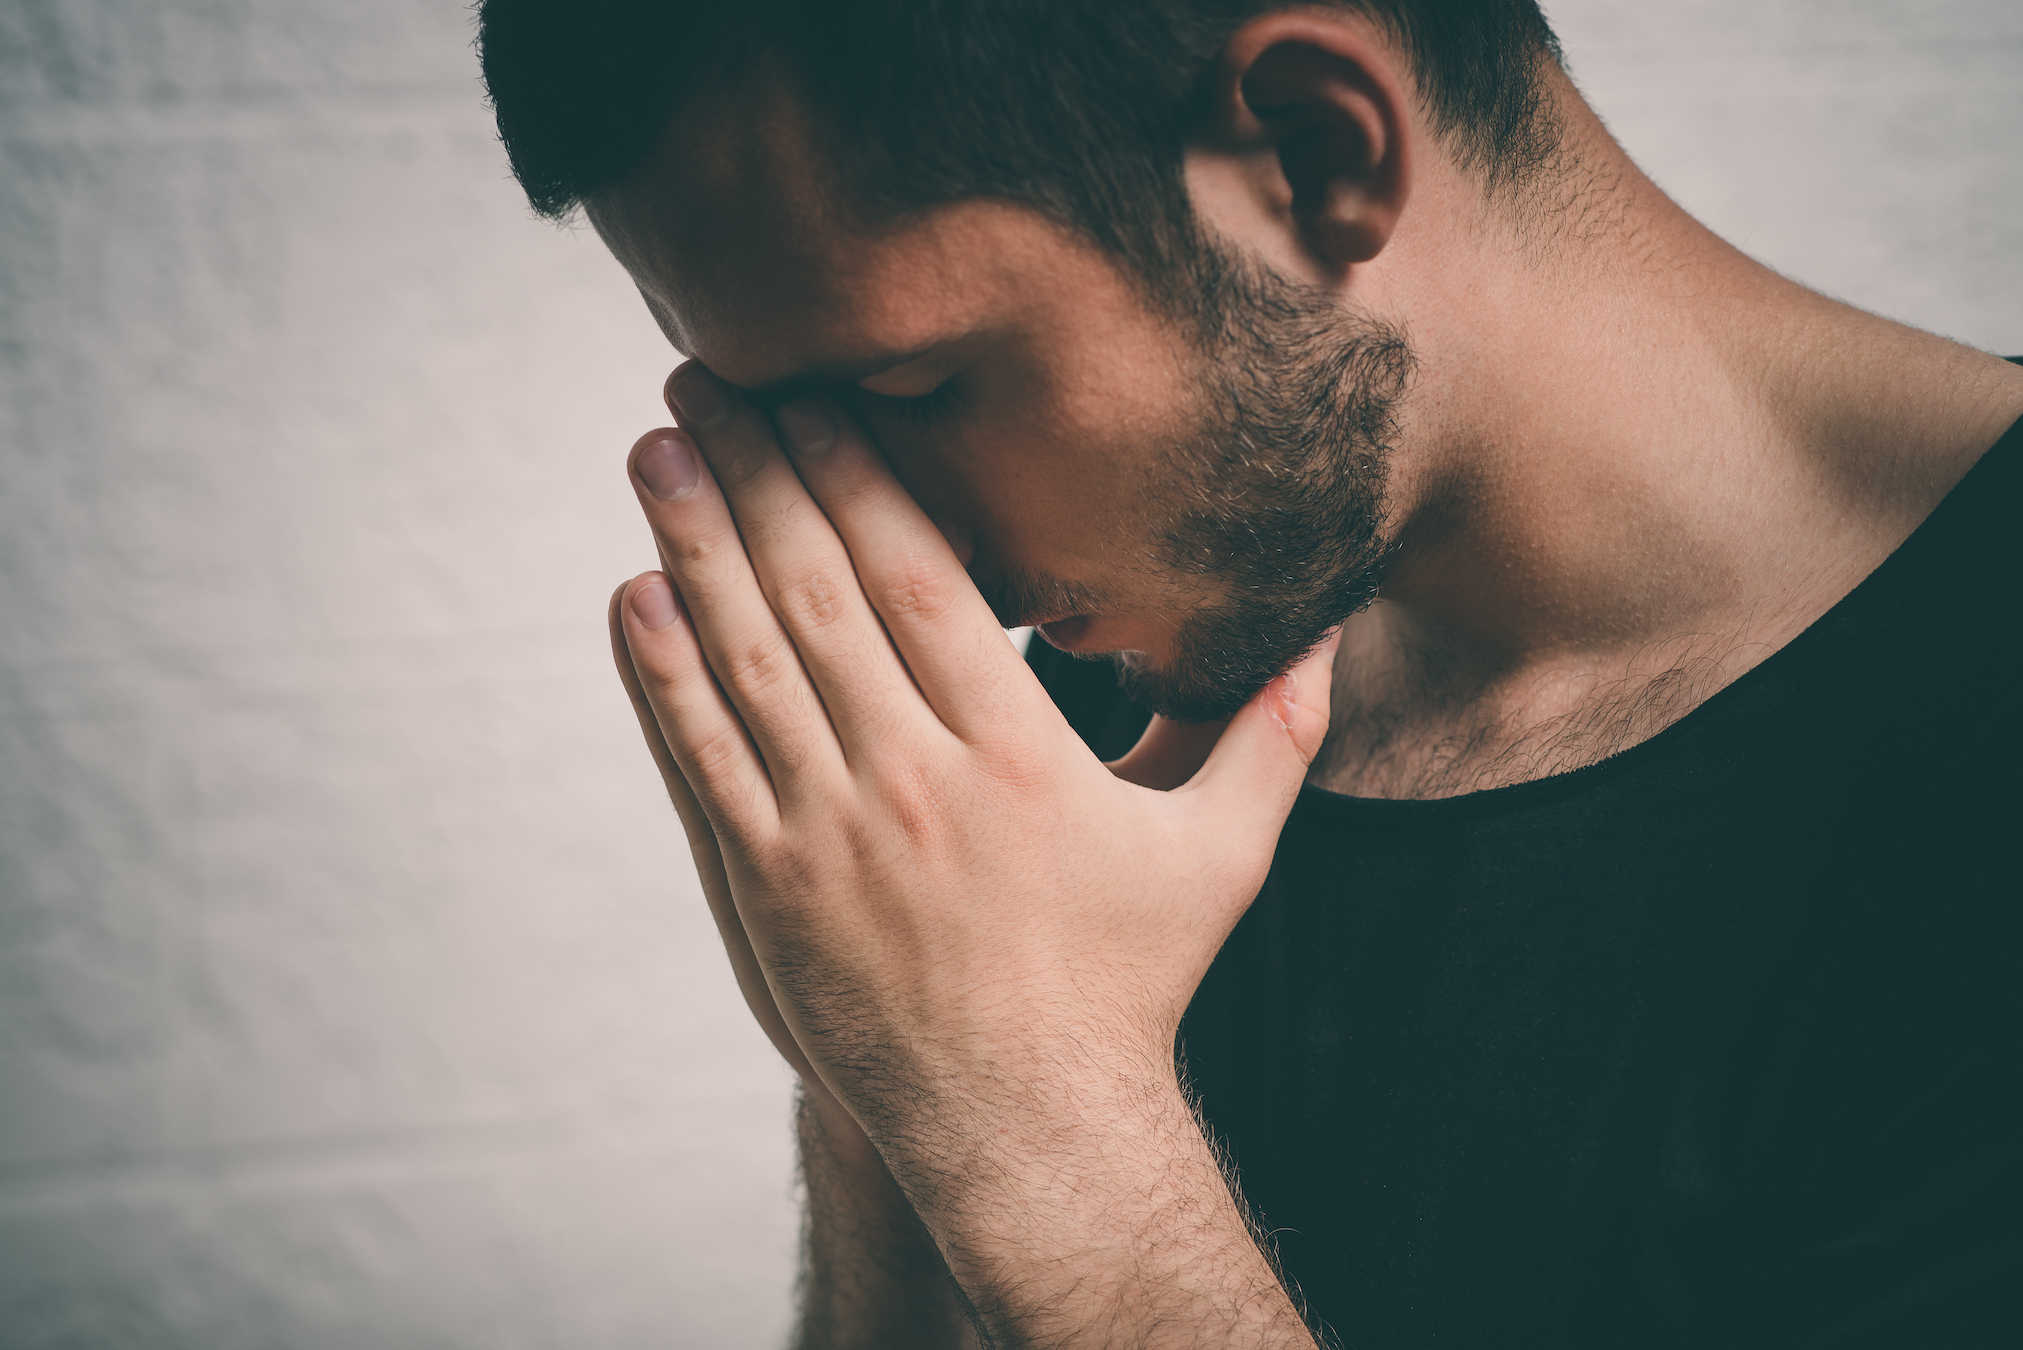 According to a survey, many people who are not religious still turn to prayer during personal crisis or difficult times.